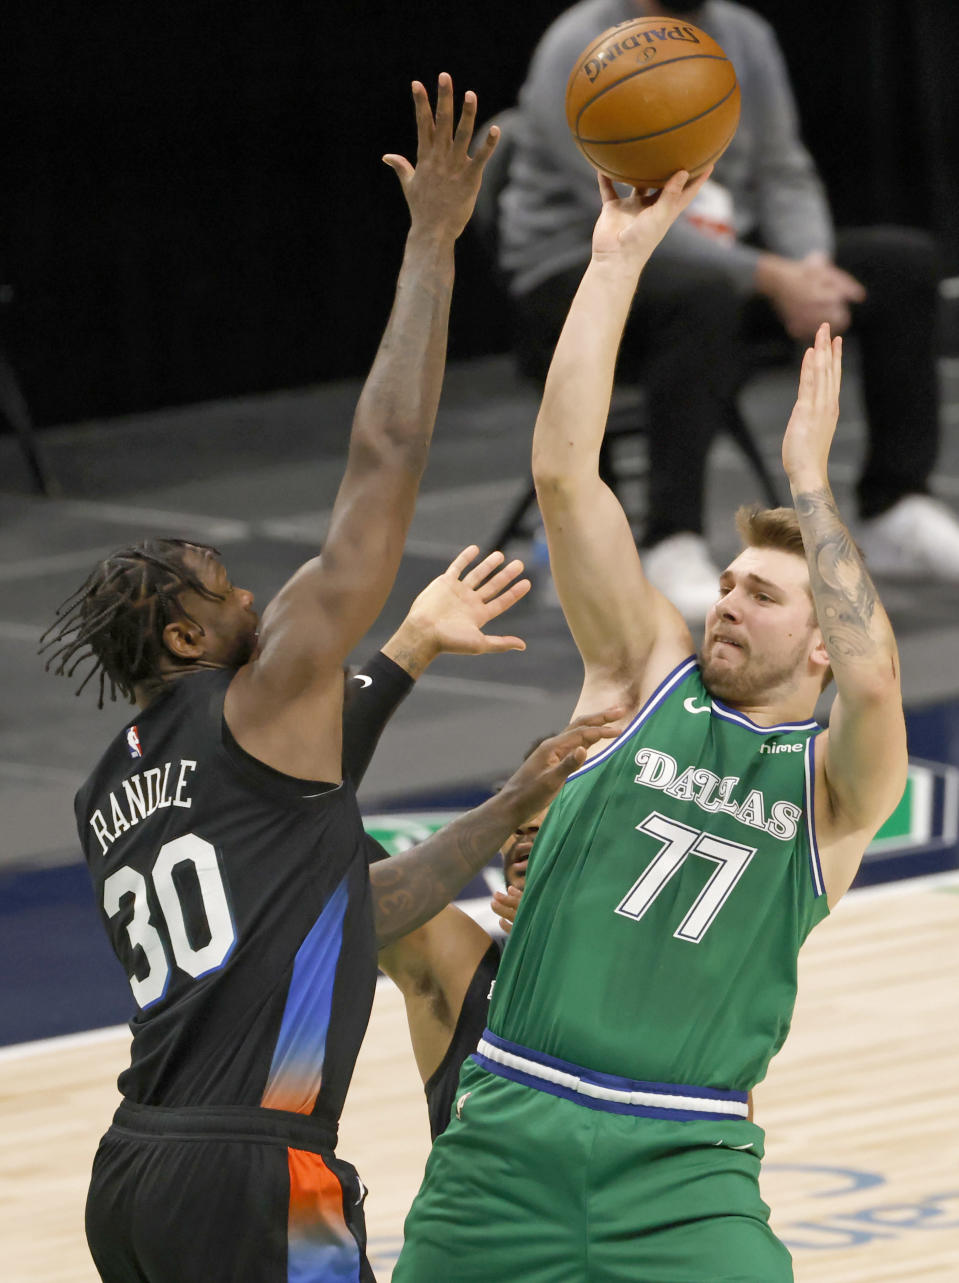 Dallas Mavericks guard Luka Doncic (77) shoots the ball as New York Knicks forward Julius Randle (30) goes up to defend during the first half of an NBA basketball game, Friday, April 16, 2021, in Dallas. (AP Photo/Ron Jenkins)